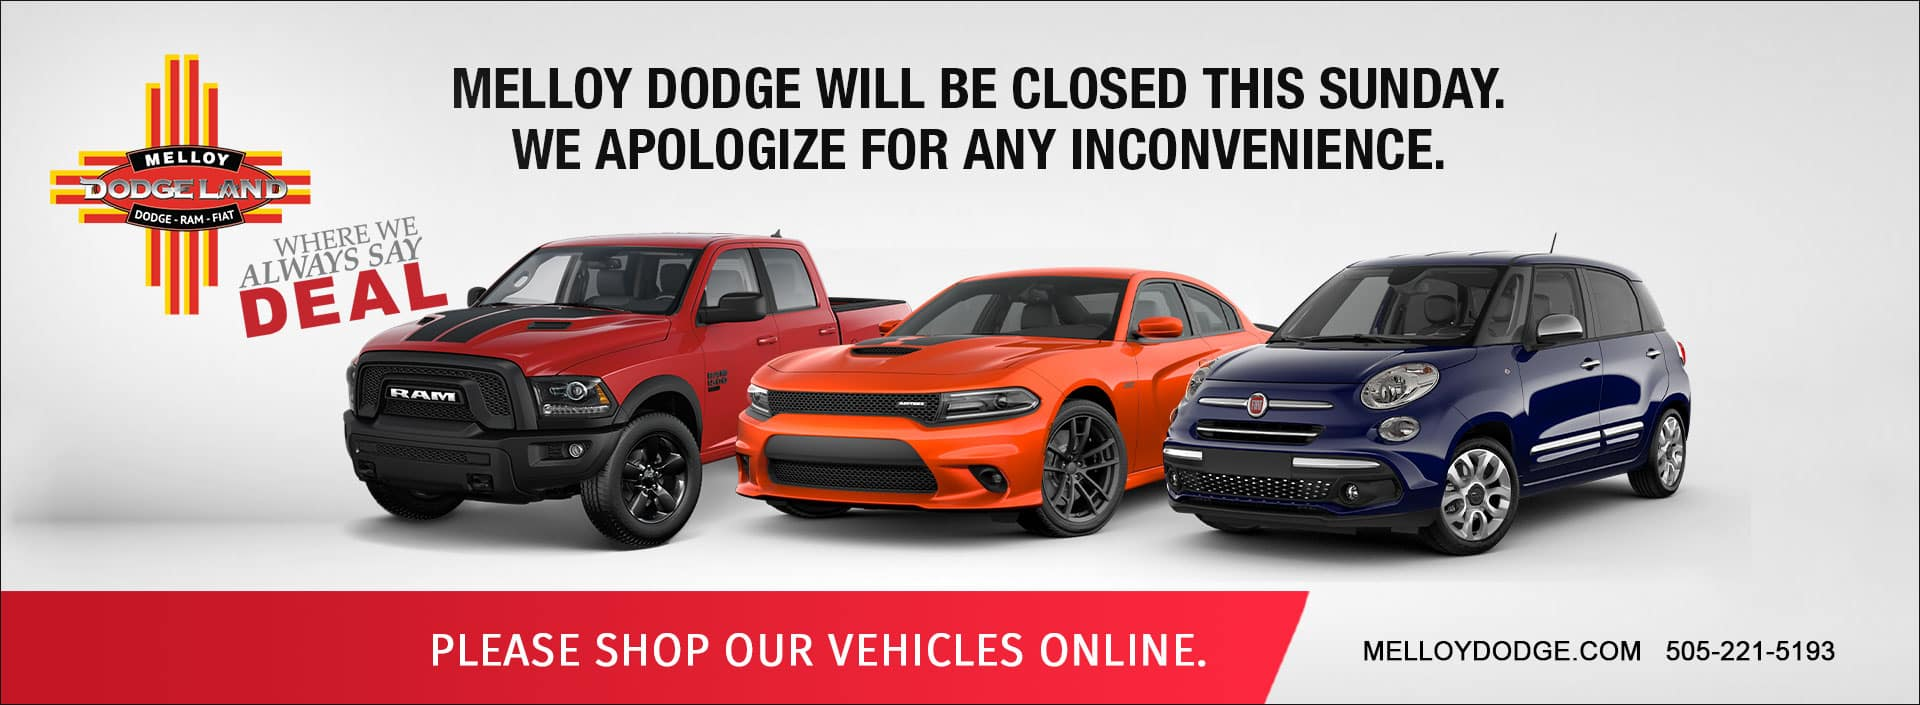 image showing closed ad